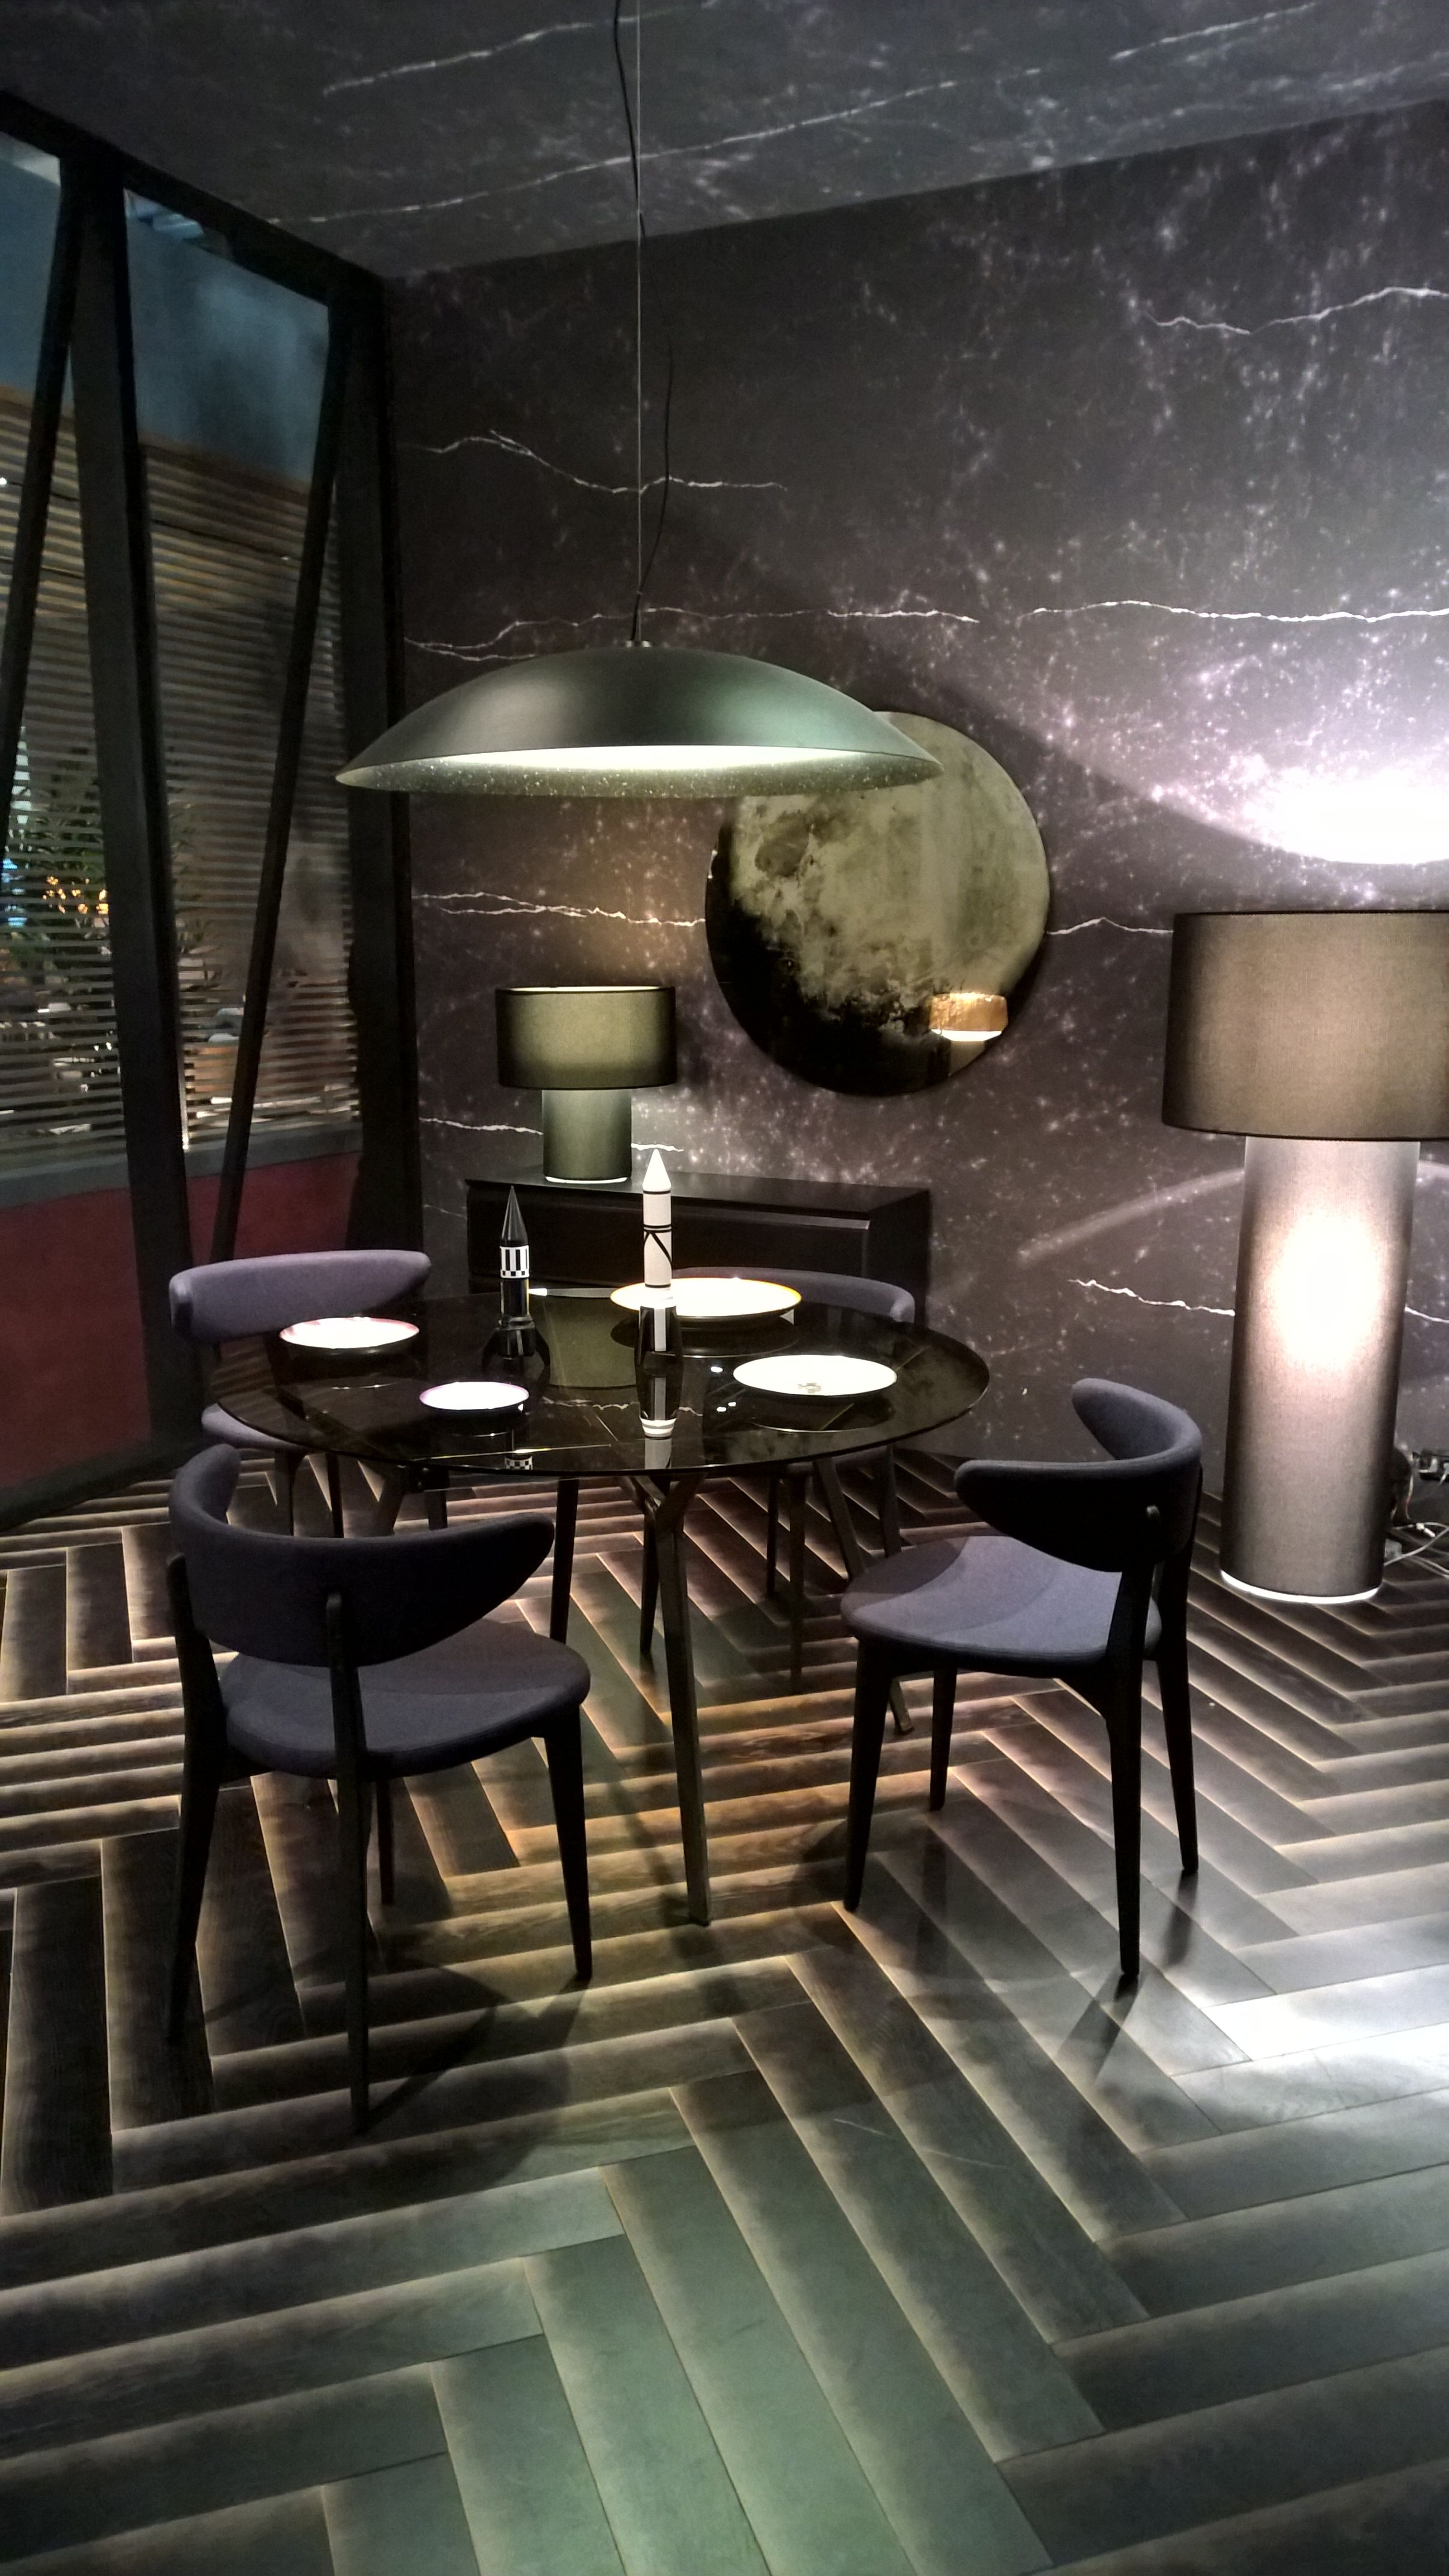 stylist and luxury tile floor designs for living rooms. Dining room interior design with herringbone tile floor and marble wall or  wallpaper Dark Living Room Trends for 2016 Herringbone floors